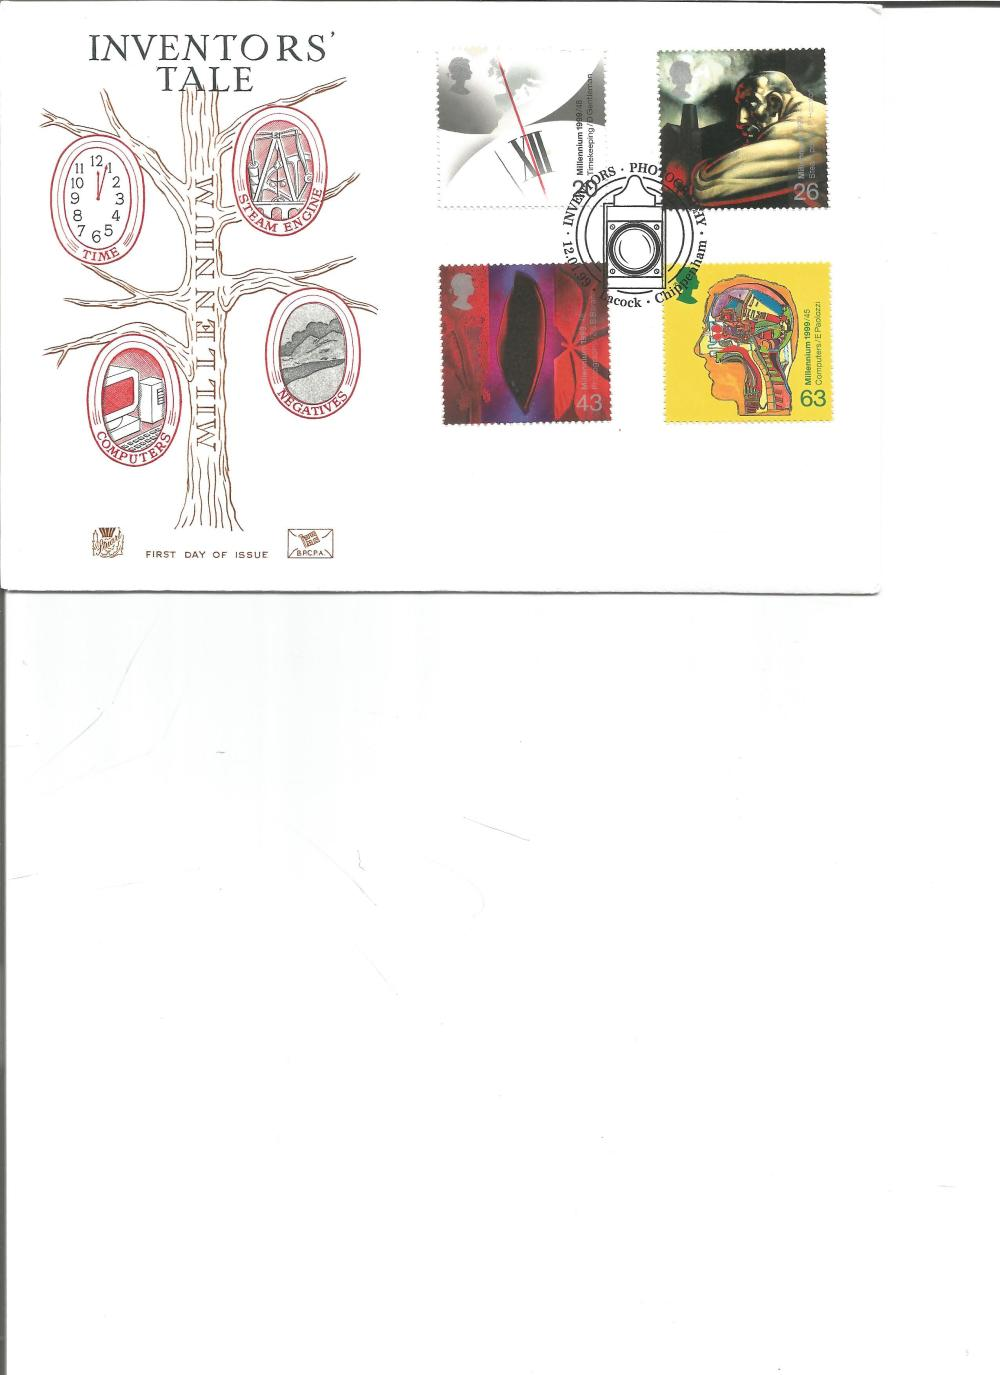 FDC Inventors Tale c/w se of four stamps PM Inventors Photography 12. 04. 99 Chippenham. We